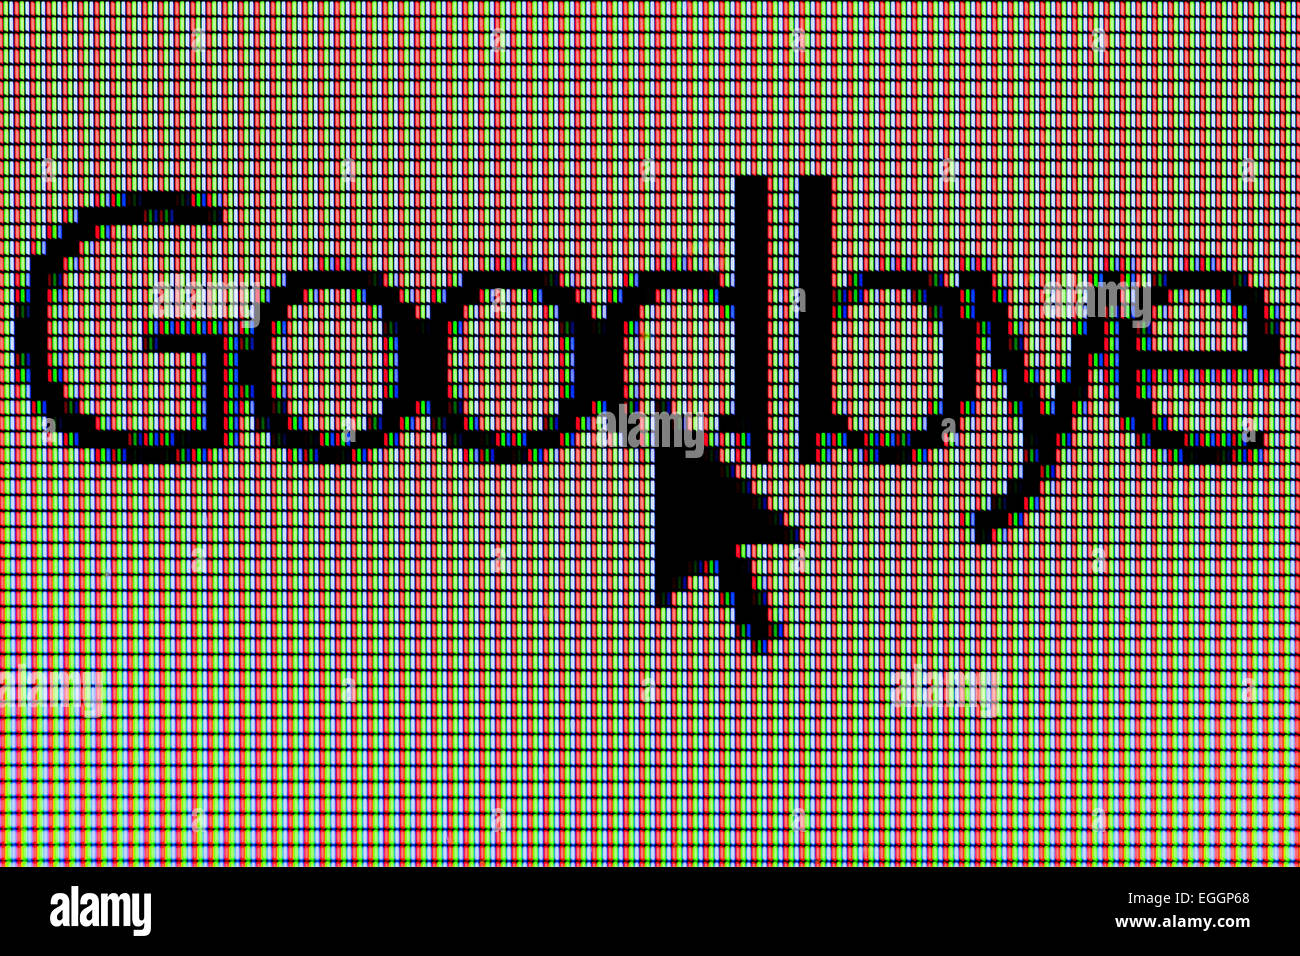 Closeup of word 'Goodbye' on LCD computer screen - Stock Image